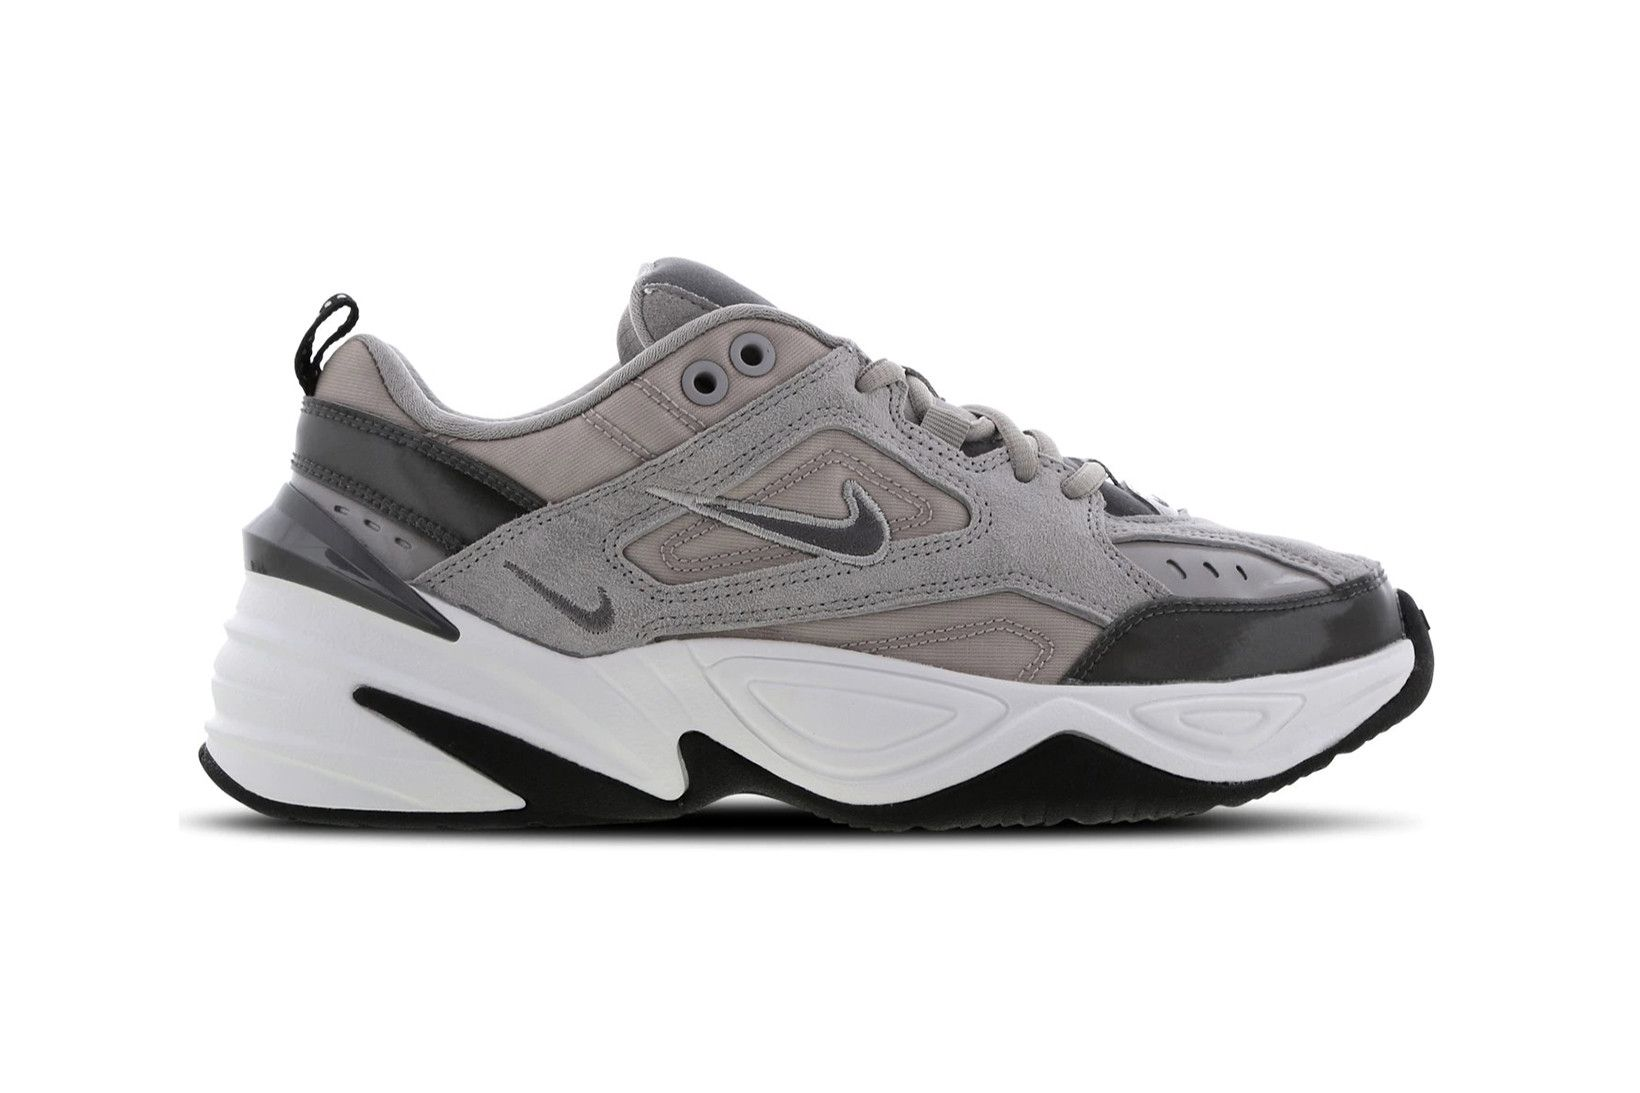 Nike S M2k Tekno Atmosphere Grey Is A Space Age Stunner Dad Shoes Sneakers Leather Shoes Woman